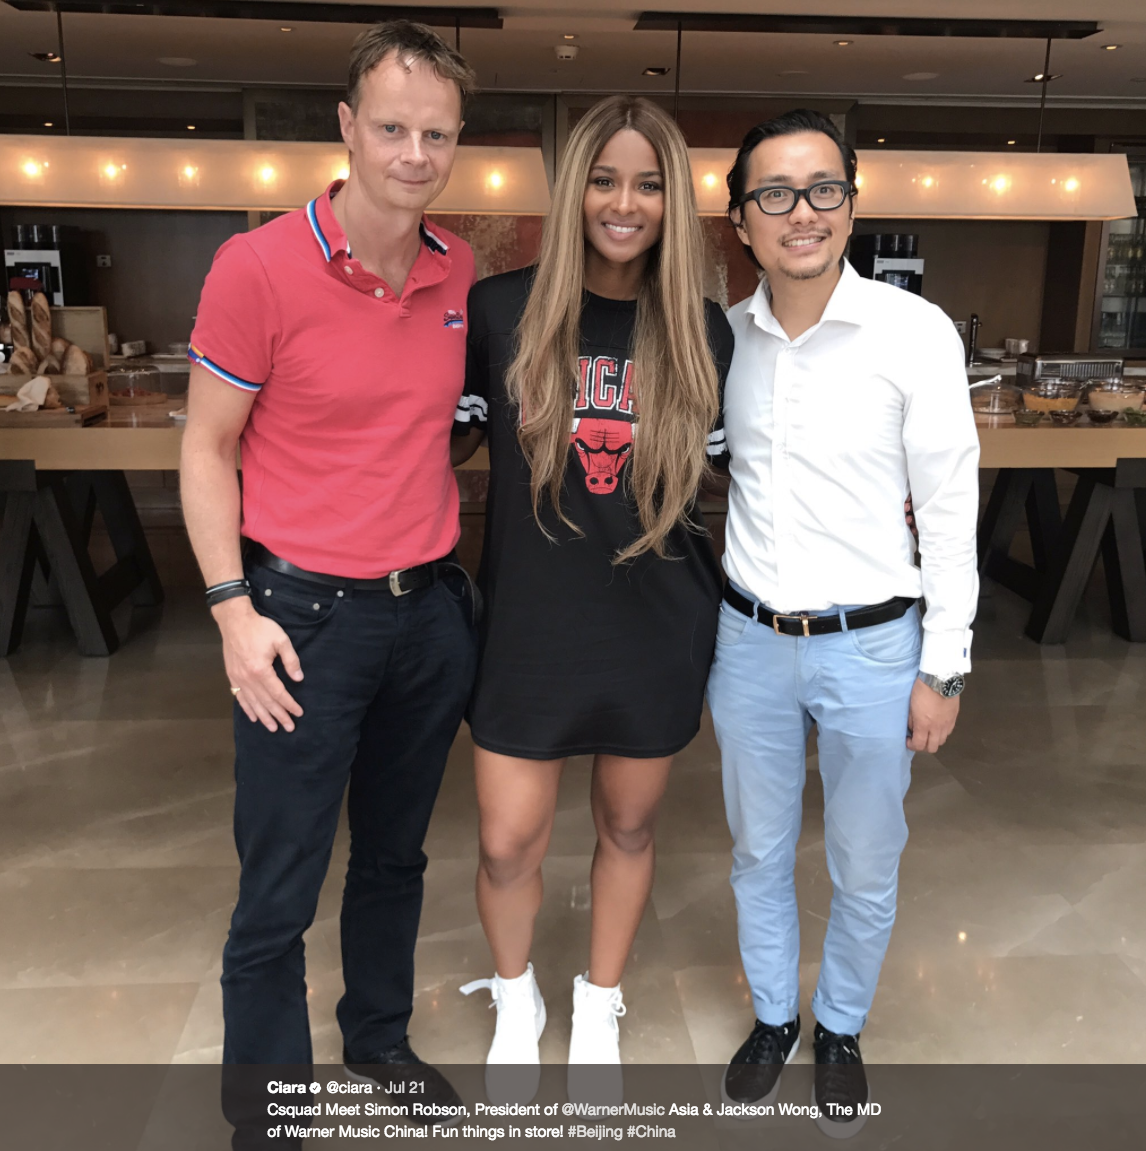 """Csquad Meet Simon Robson, President of @WarnerMusic Asia & Jackson Wong, The MD of Warner Music China! Fun things in store! #Beijing #China""                      The entire Wilson family has been traveling around China on vacation before training camp starts back in Seattle next week! Ciara, Russell, Sienna and Future spent time at Disneyland Shanghai, the Great Wall, shopping in local markets, and doing multiple photoshoots (they are the Wilsons, after all)! Russell was there in part as a rep for Nike, and spent time at their Shanghai campus doing drills with local children (and Future Jr.!) and ""bringing football to China"".  (Image: @ciara / twitter.com/ciara)"